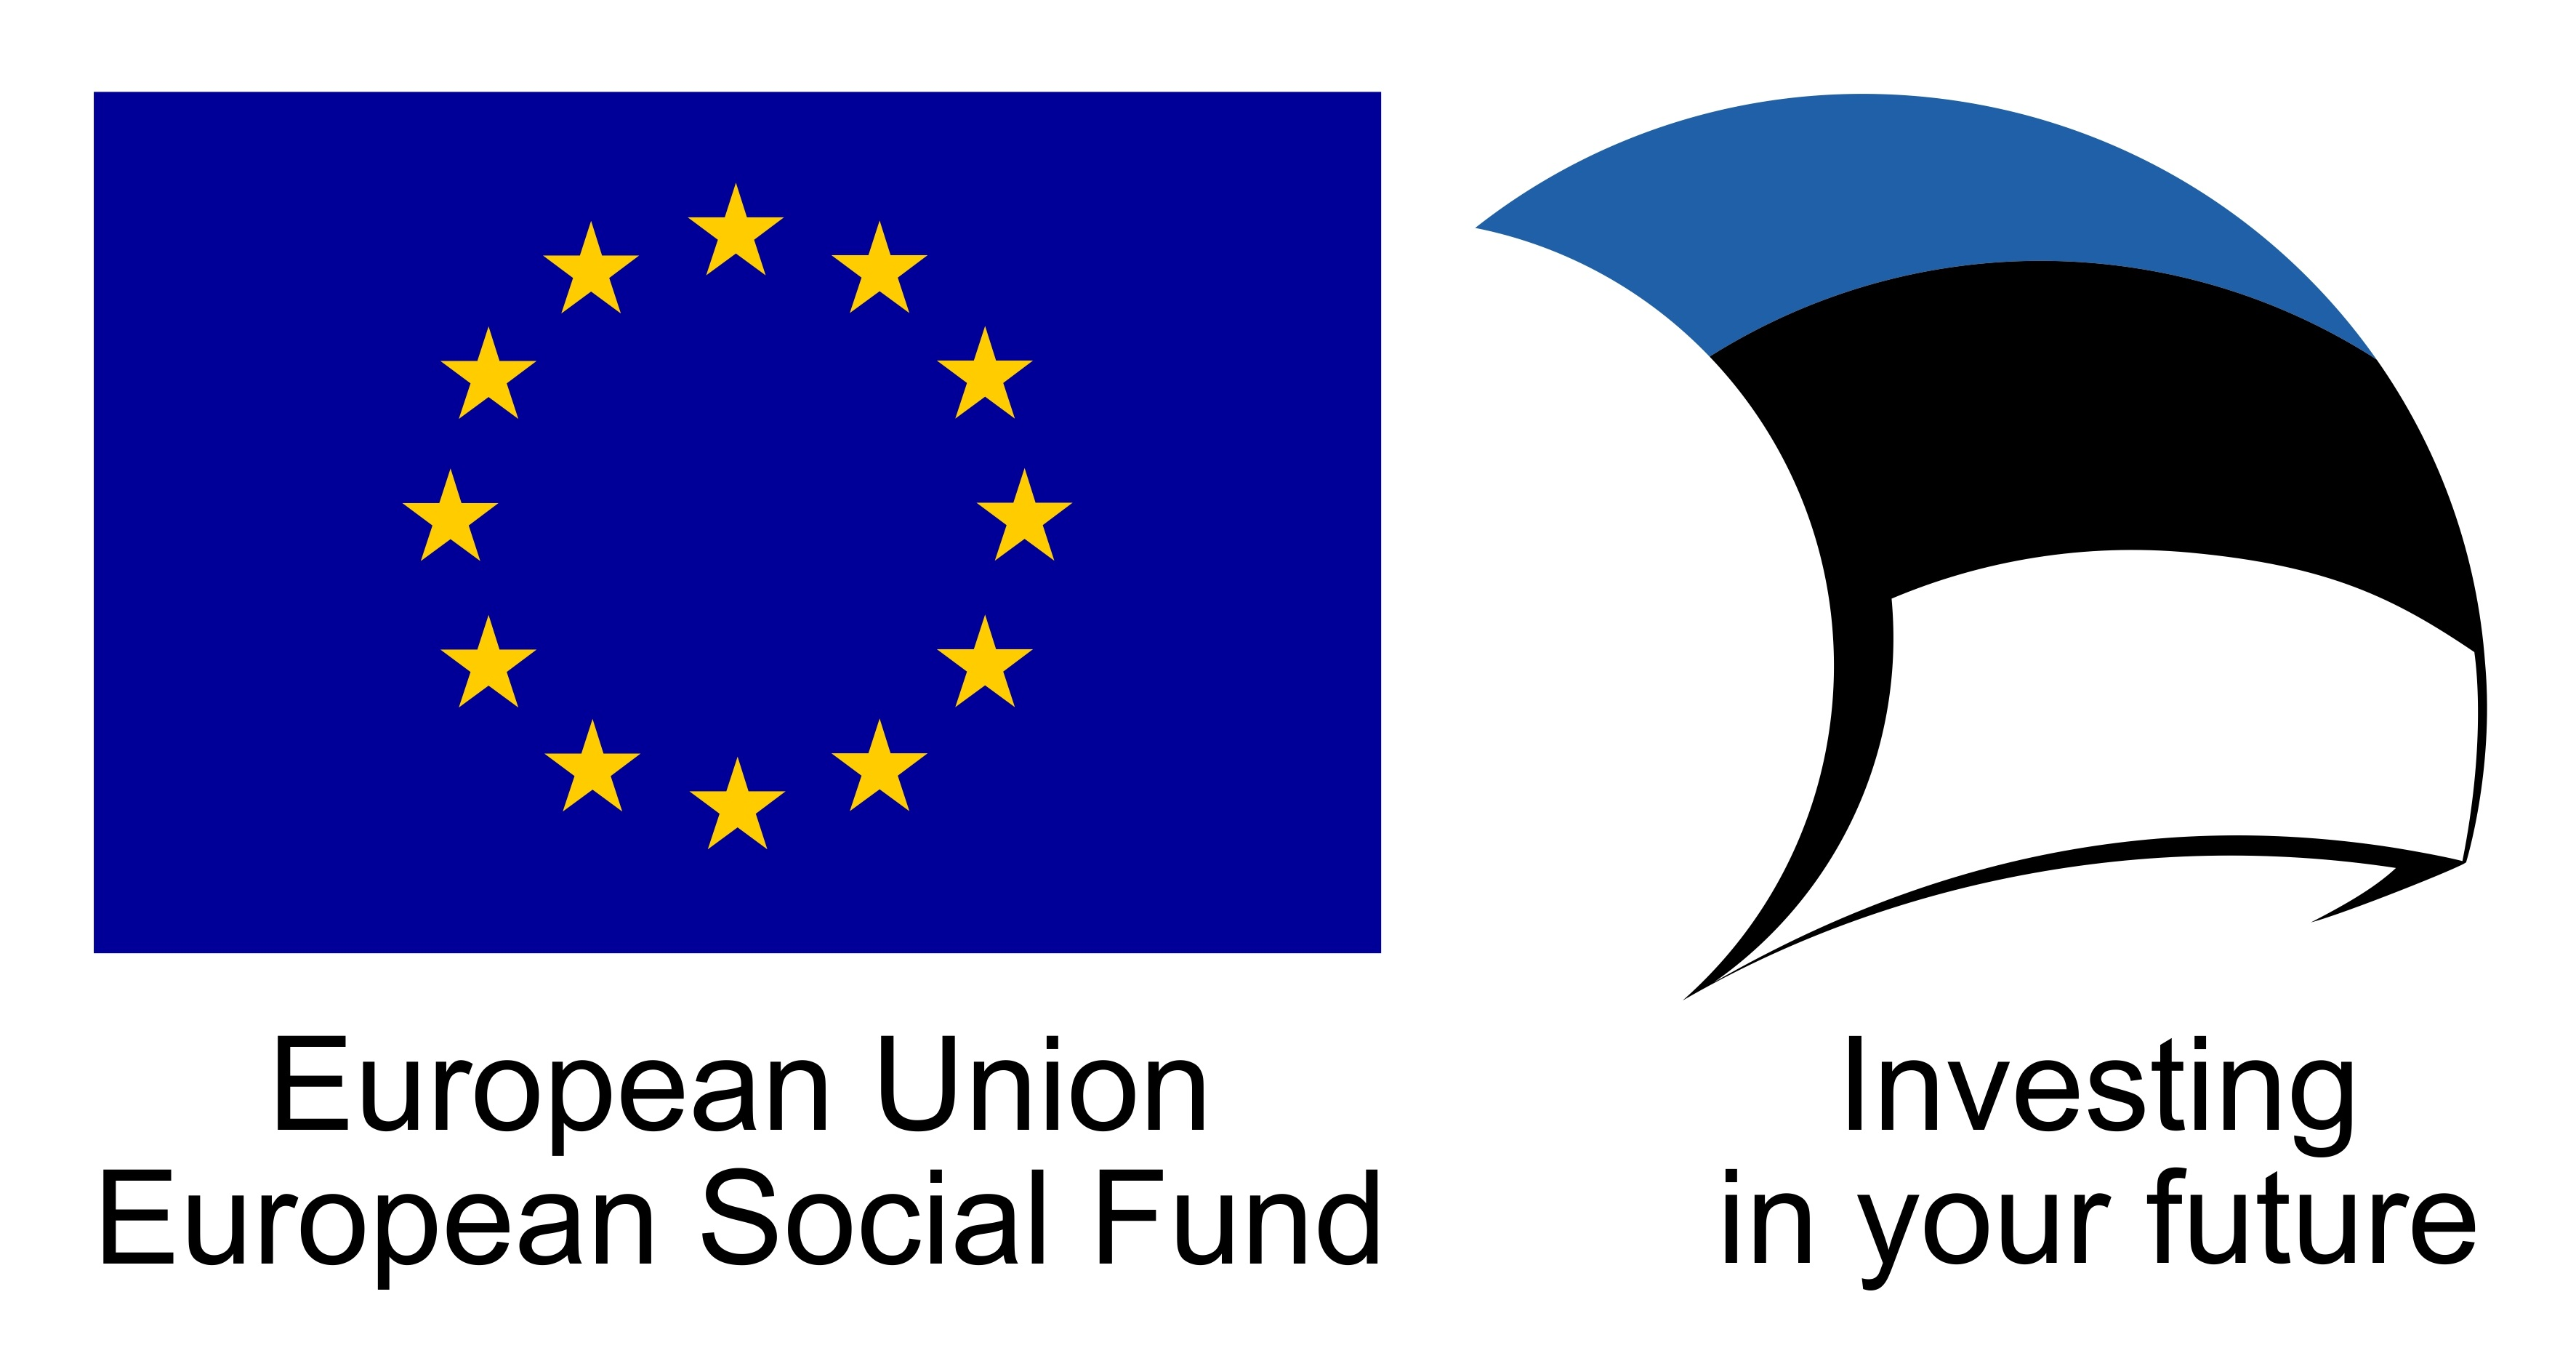 EU_Social_Fund_horizontal.jpg